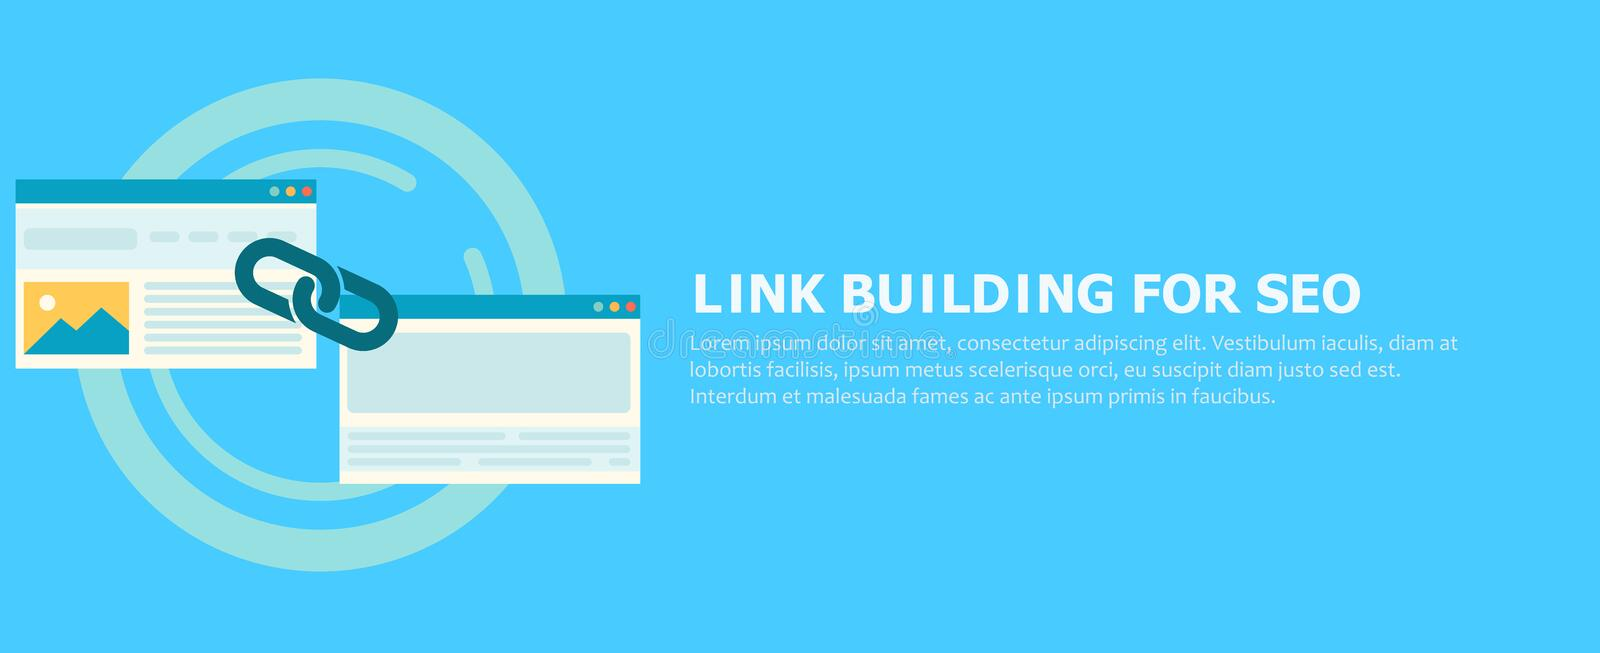 Link building for seo banner. Two pages are connected by a chain royalty free illustration